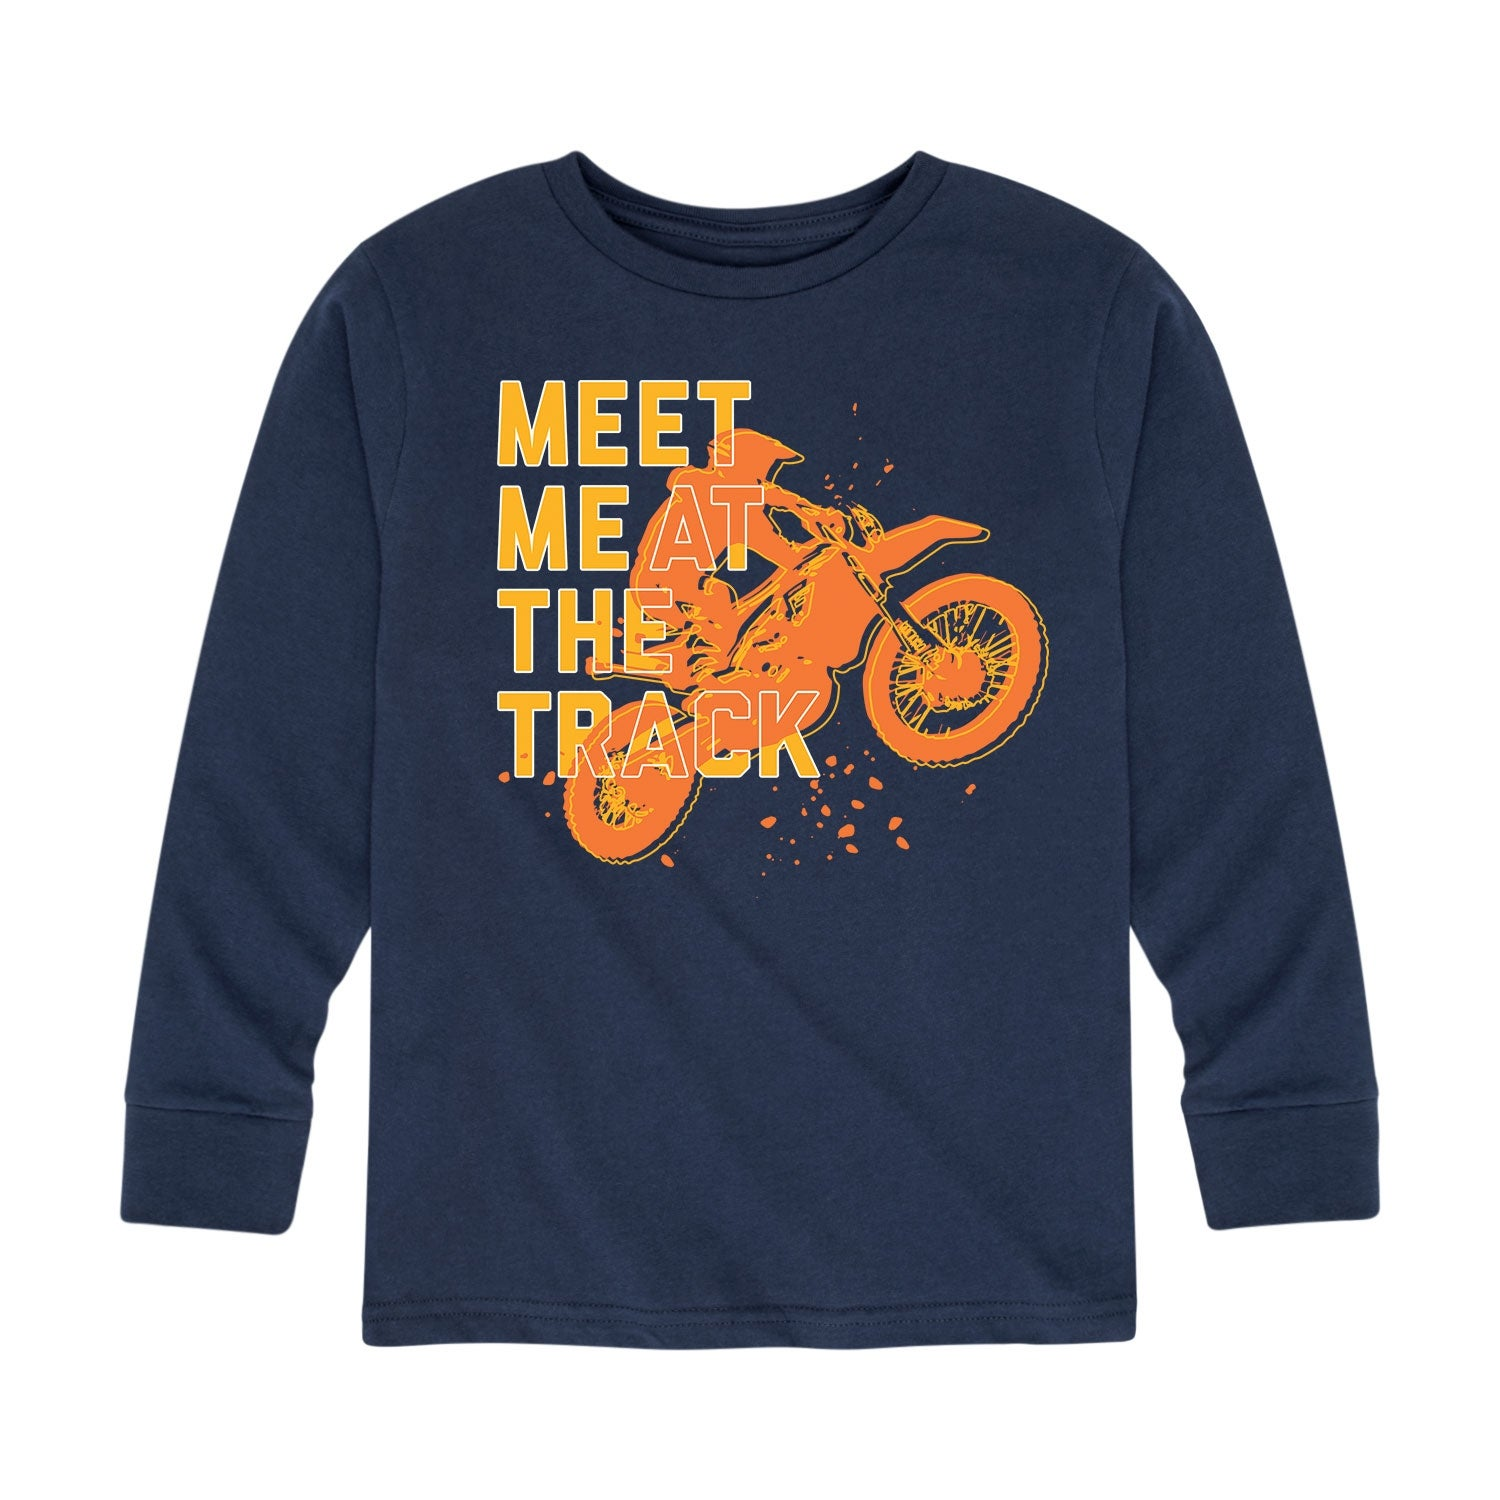 Toddler Short Sleeve Tee PTC Meet Me at The Library